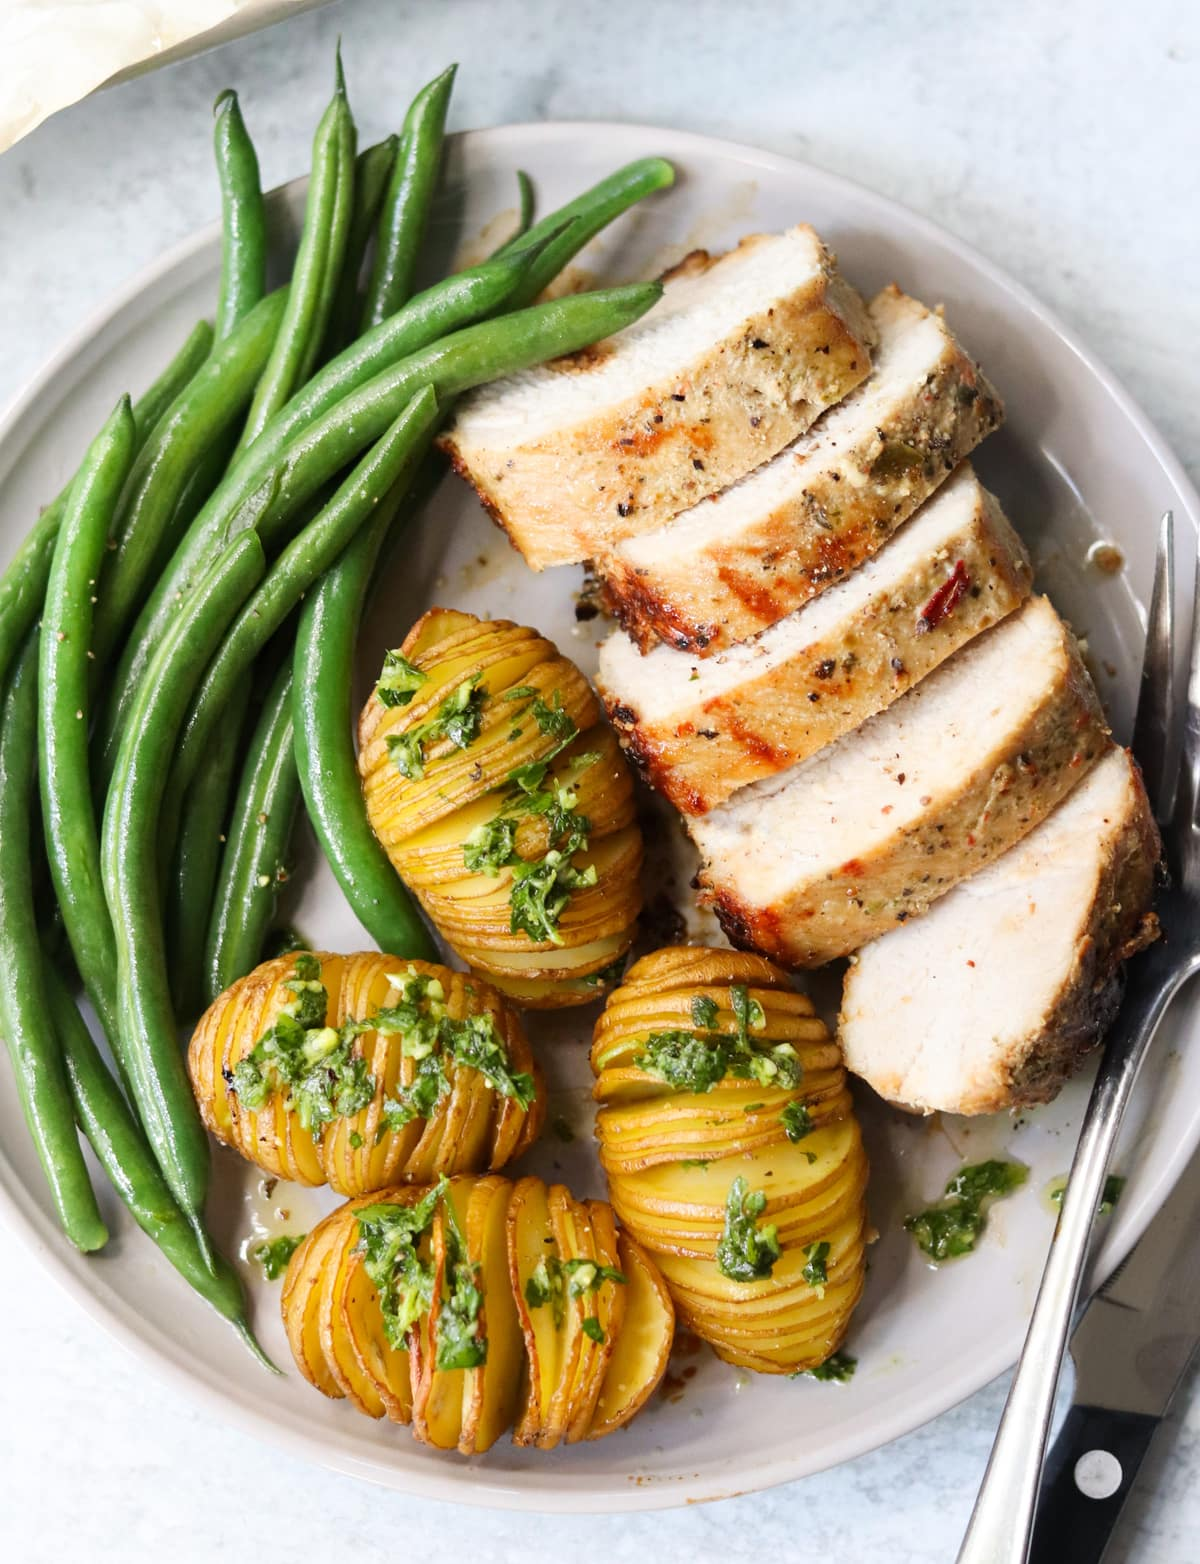 Top down of a small plate with four large slices of cooked pork loin, four small hasselback potatoes topped with green gremolata, and green beans.